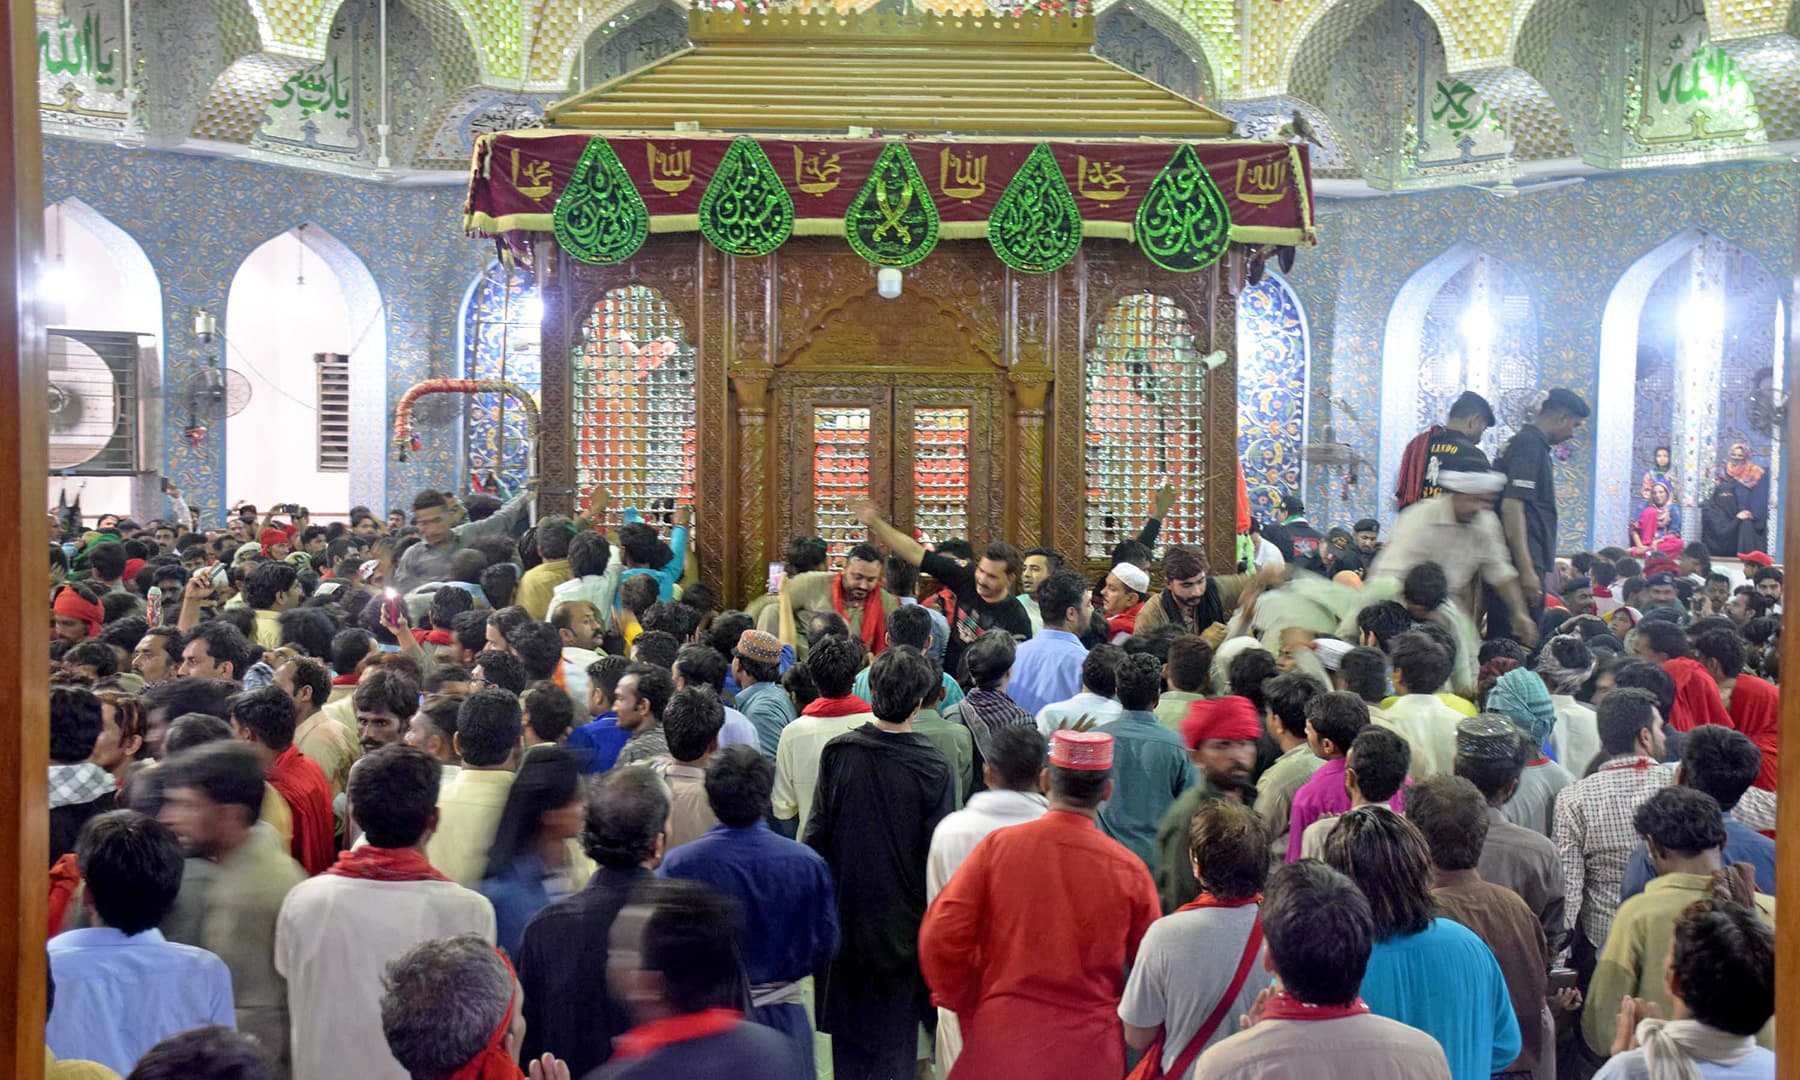 Devotees throng the inner sanctum of Qalandar's shrine at midnight between April 23 and 24.